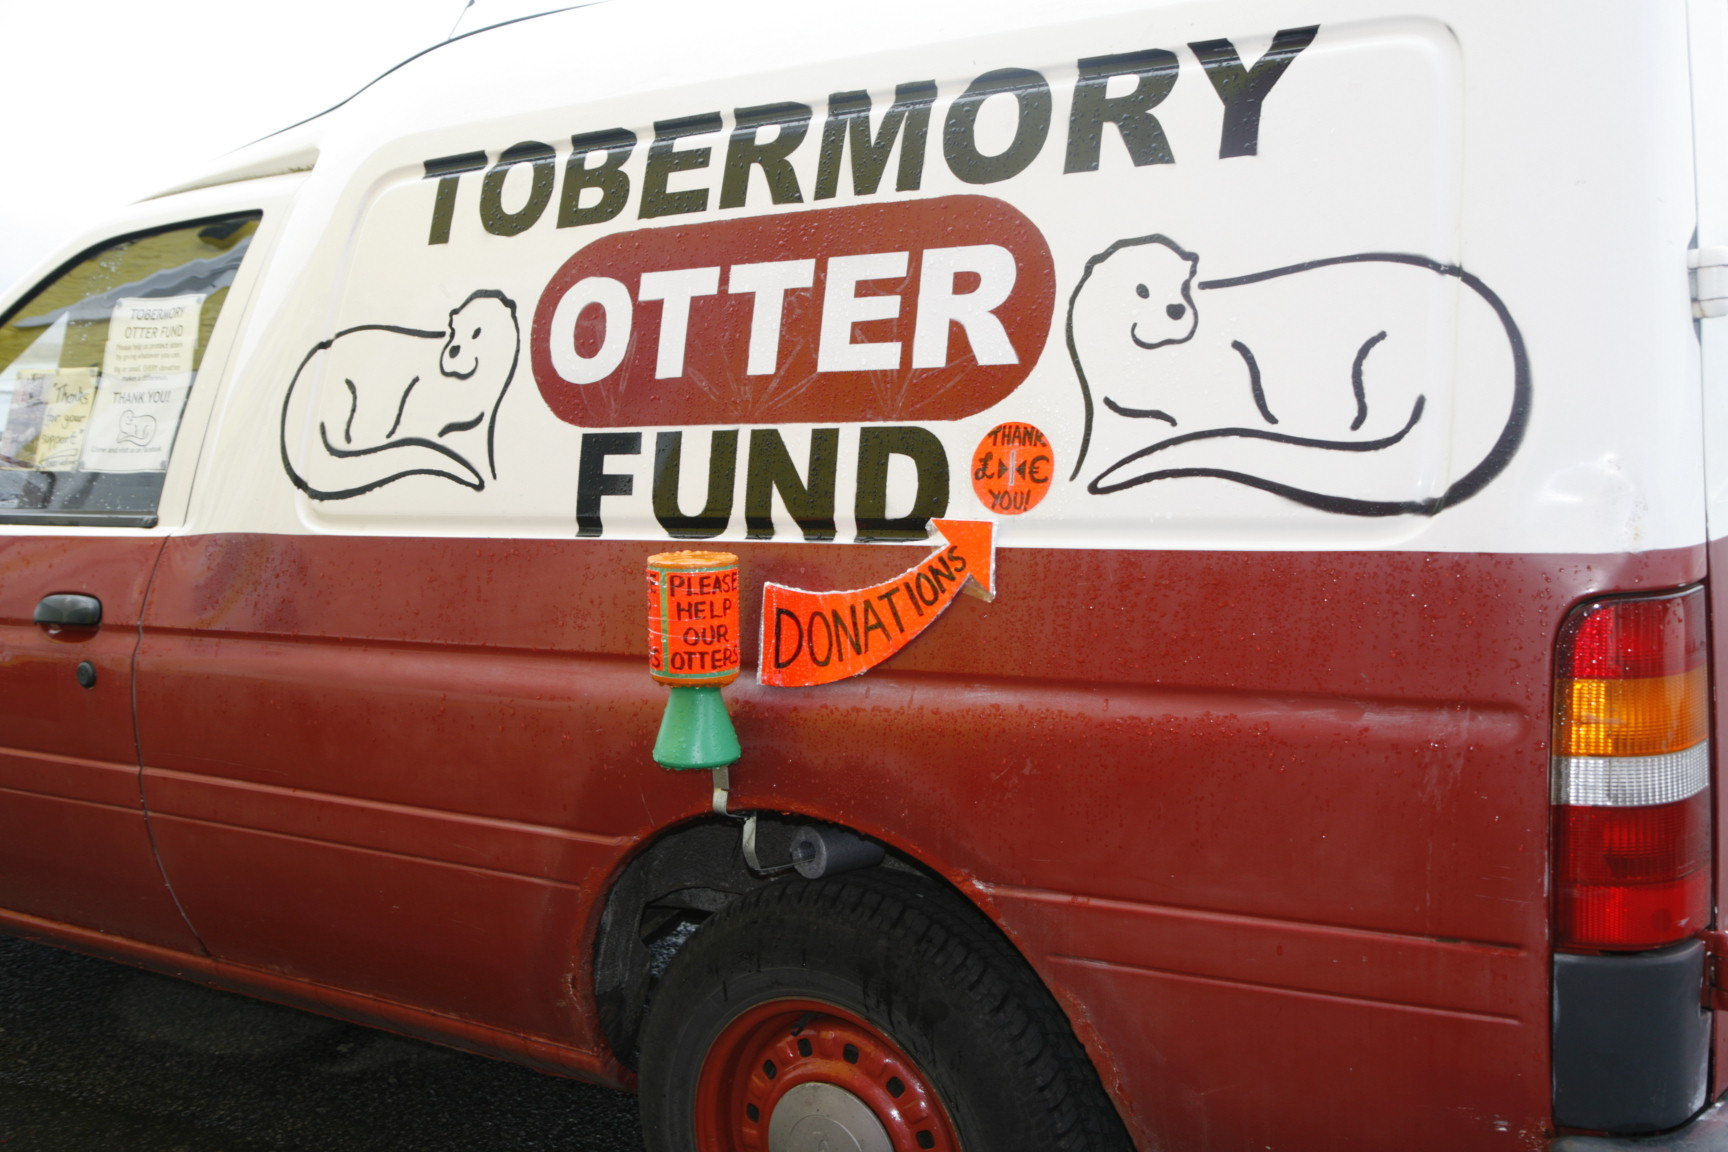 New coin slots cut into both sides of the TOF van allow donations to be taken 24/7.